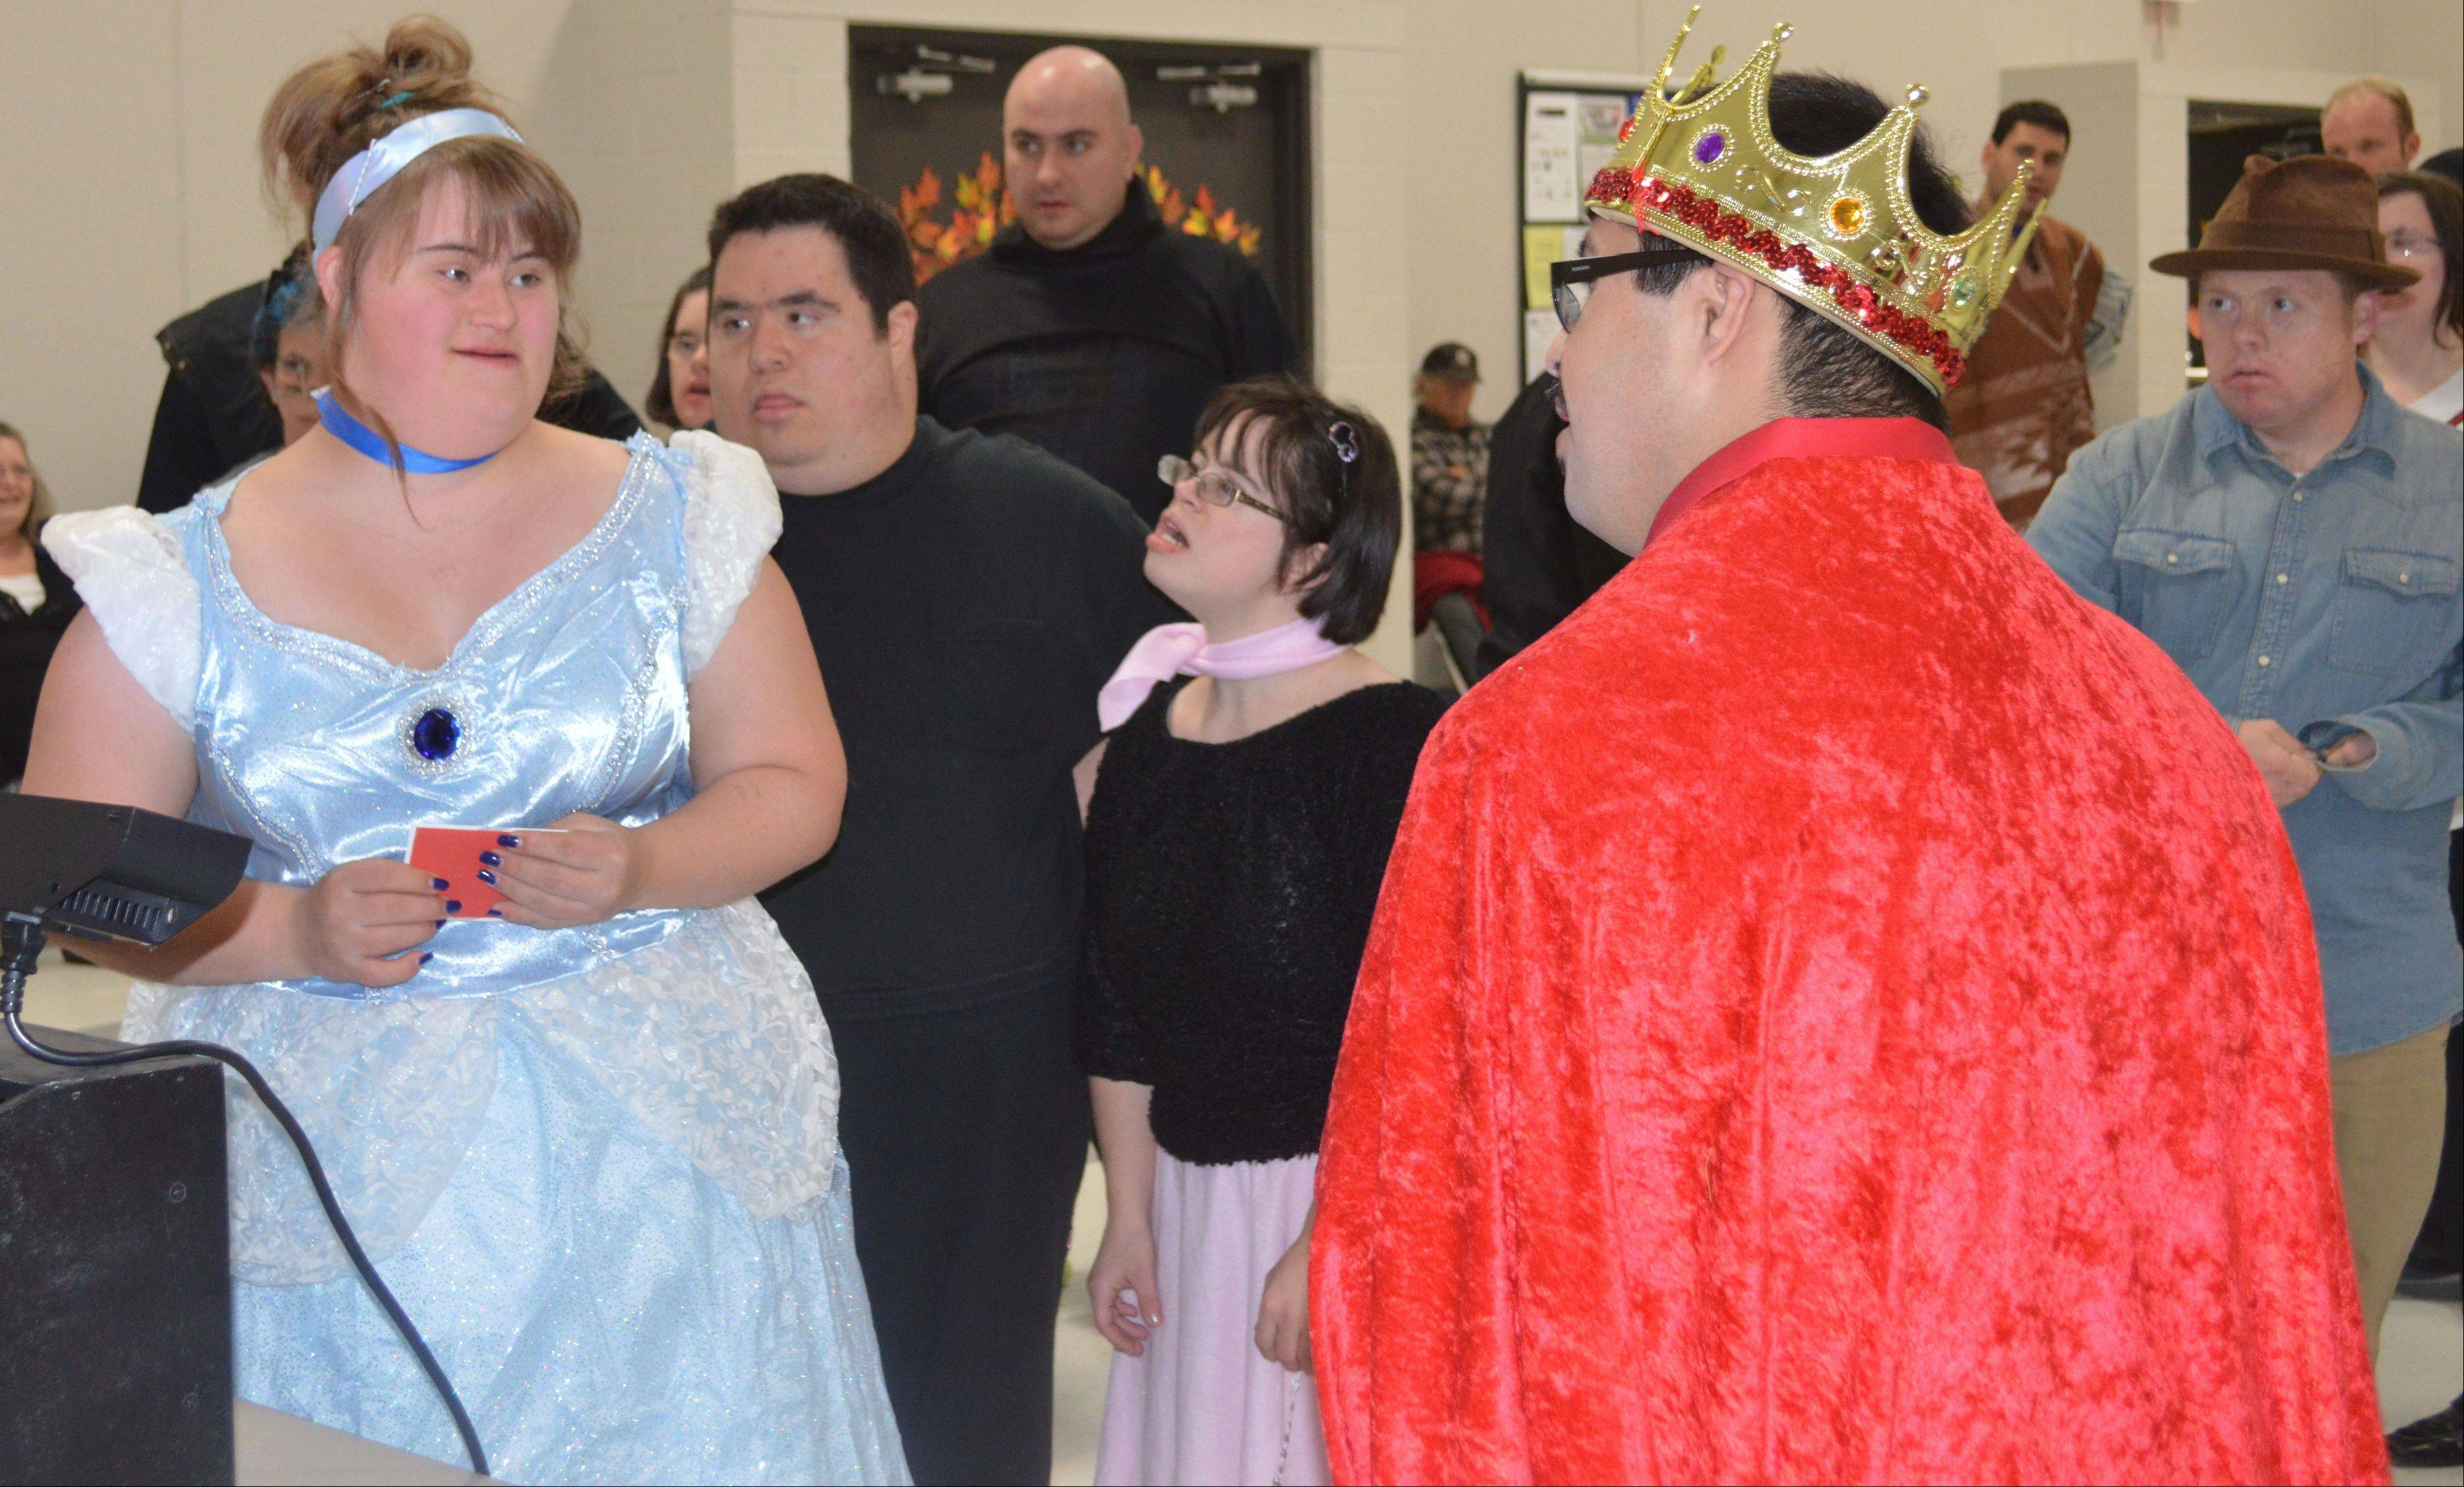 """Cinderella"" wins a Target gift card for best costume at the Halloween Dance hosted by Schaumburg Township Disability Services."